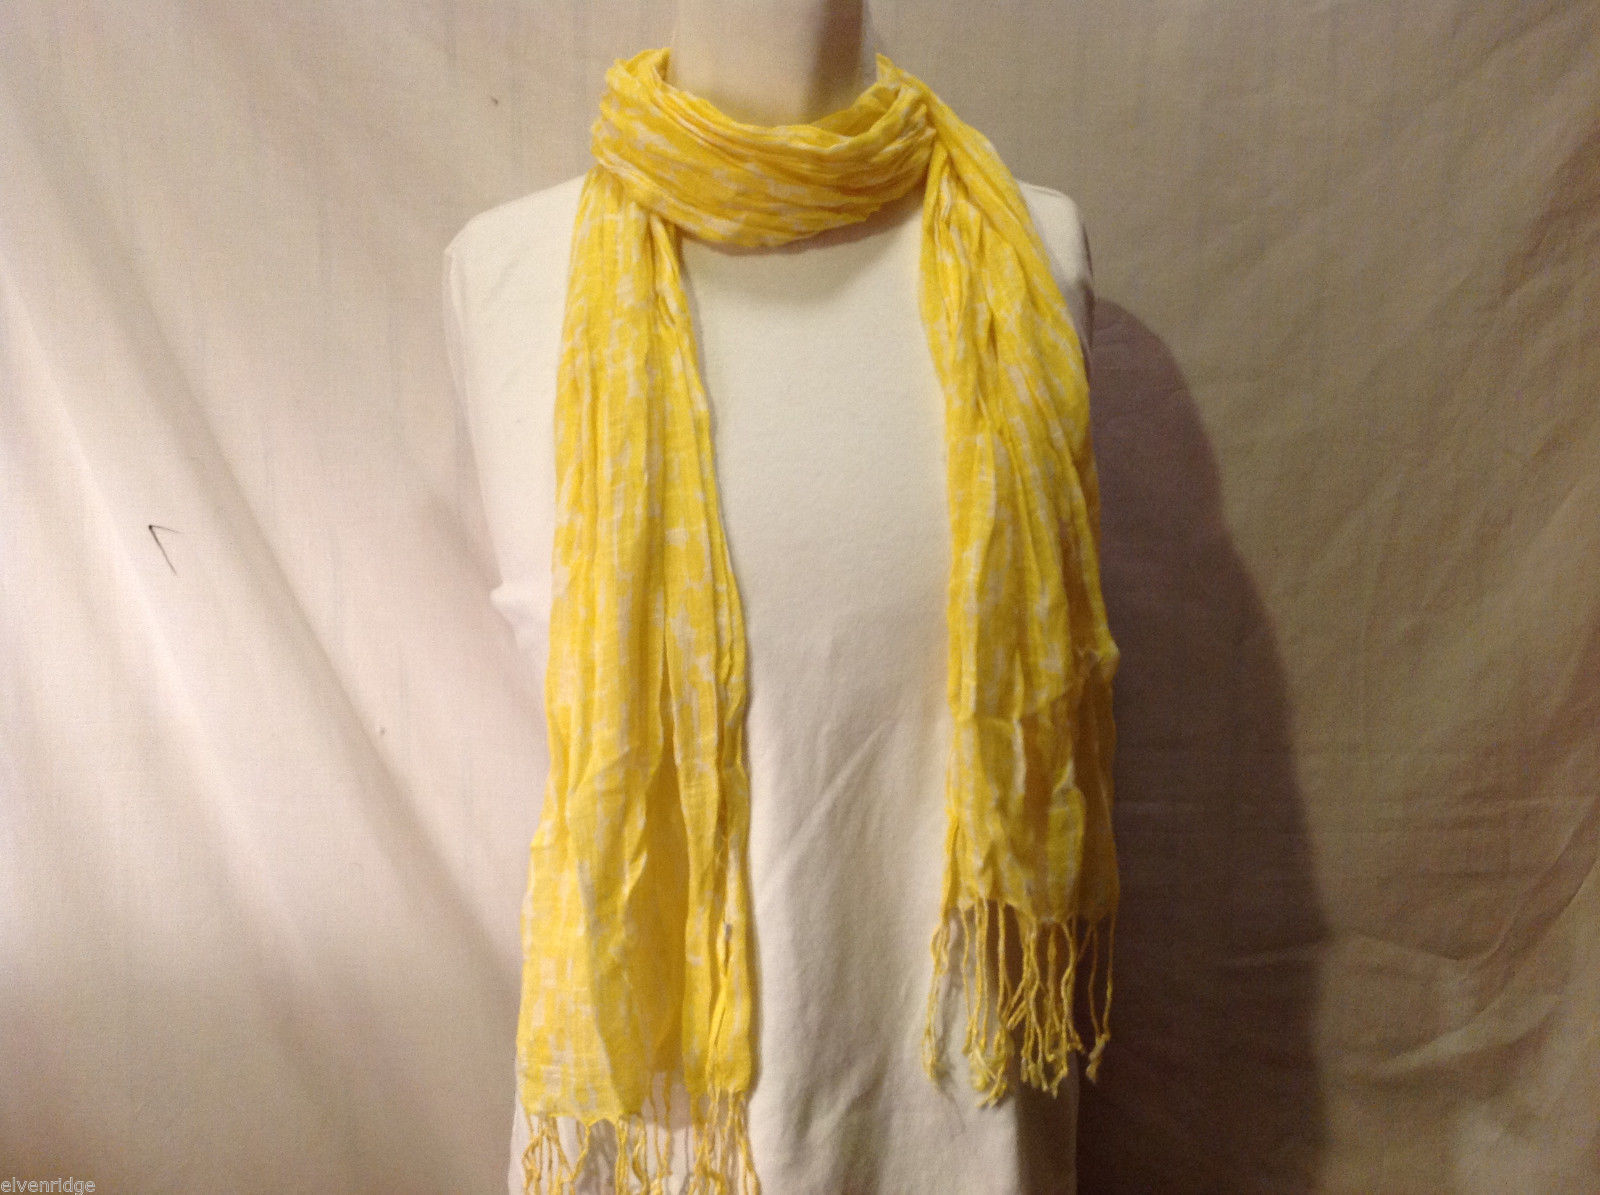 Lightweight Yellow and White Patterned Crinkle-Textured Scarf with Fringe Trim